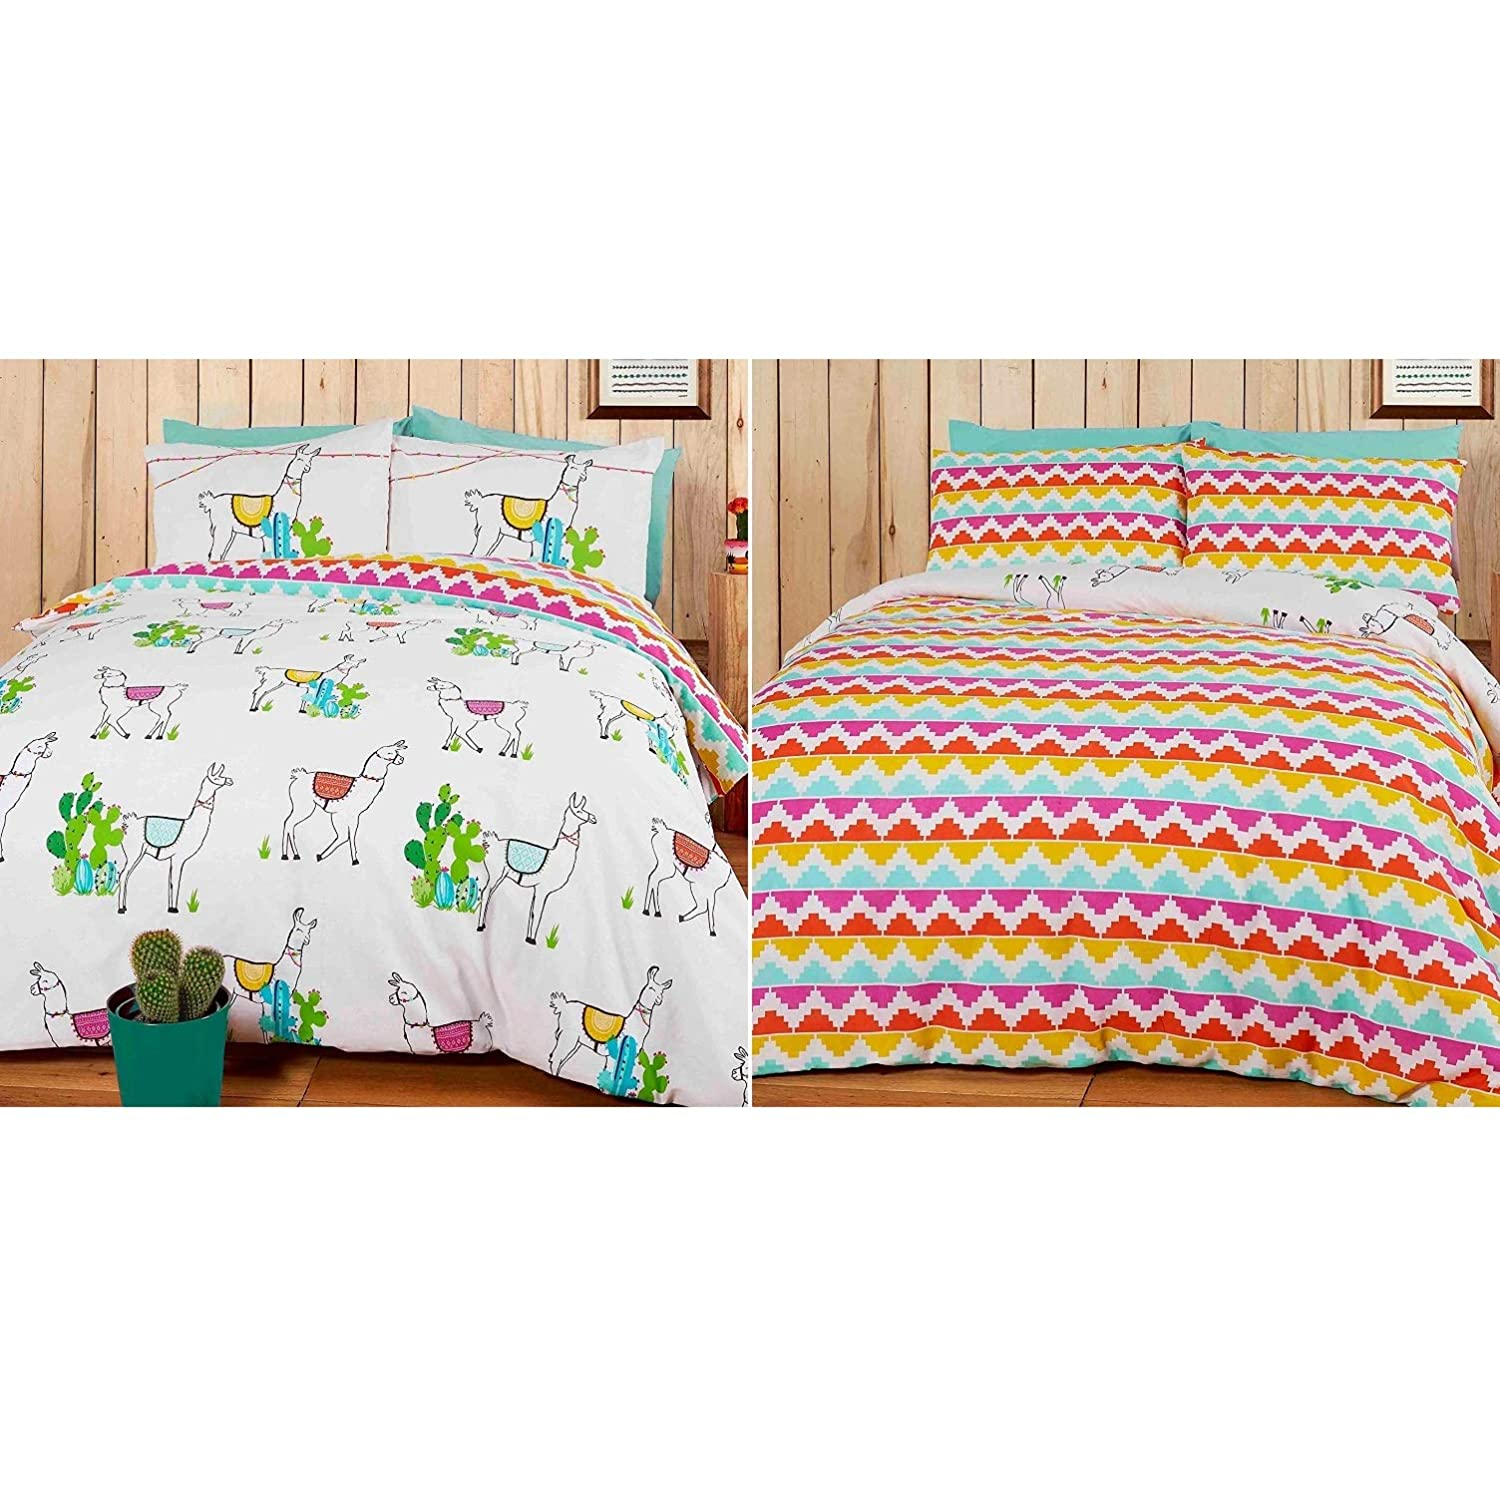 Rapport Happy Llamas Reversible Duvet Set, Polyester-Cotton, Multi-Colour, 200 x 200 x 1 cm LLAMAS-DOUB-MULT